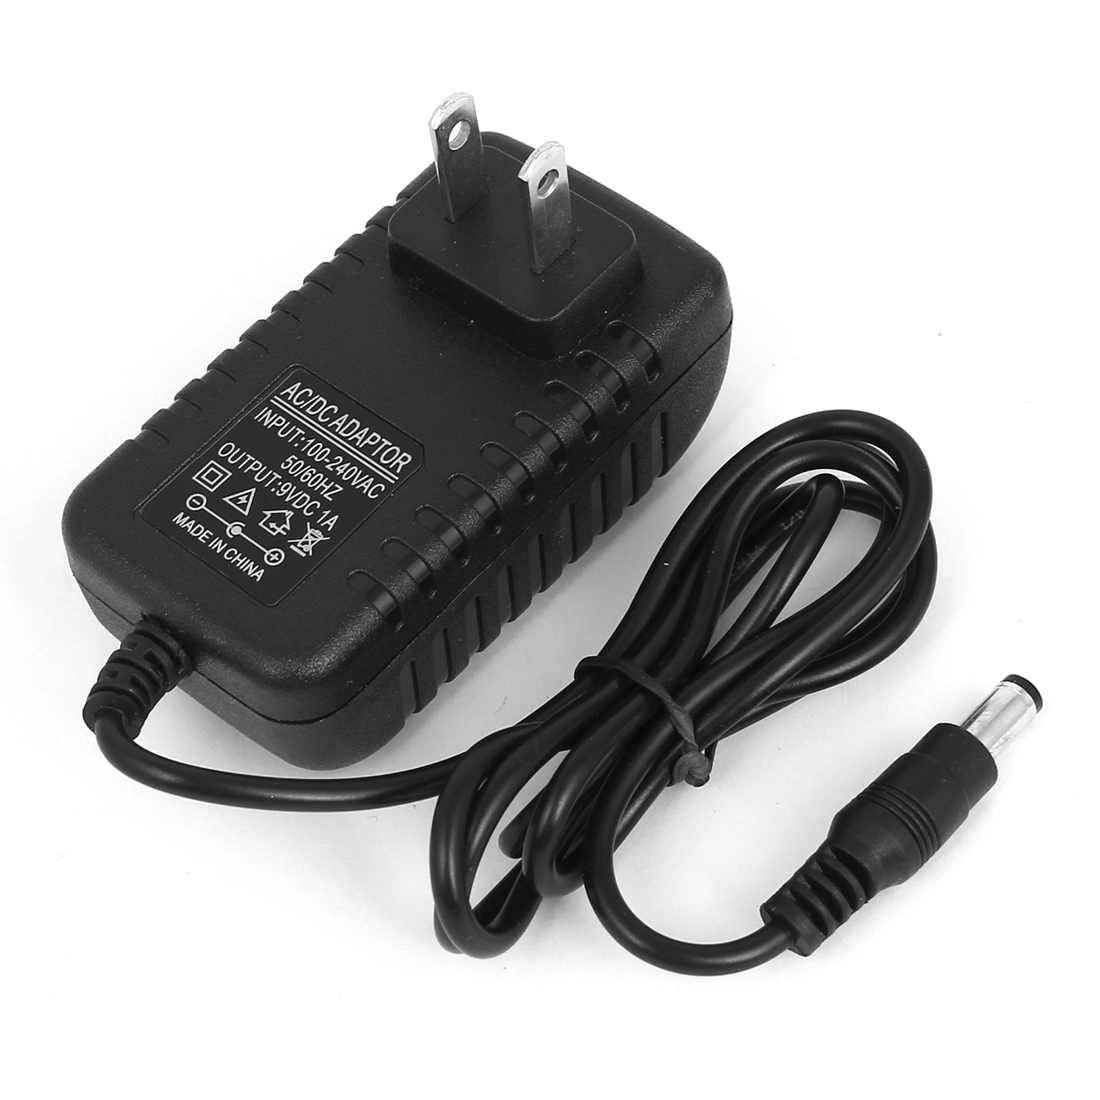 US Plug AC 100V-240V to DC 9V 1A 5.5x2.5mm Power Adapter Adaptor Wall Charger